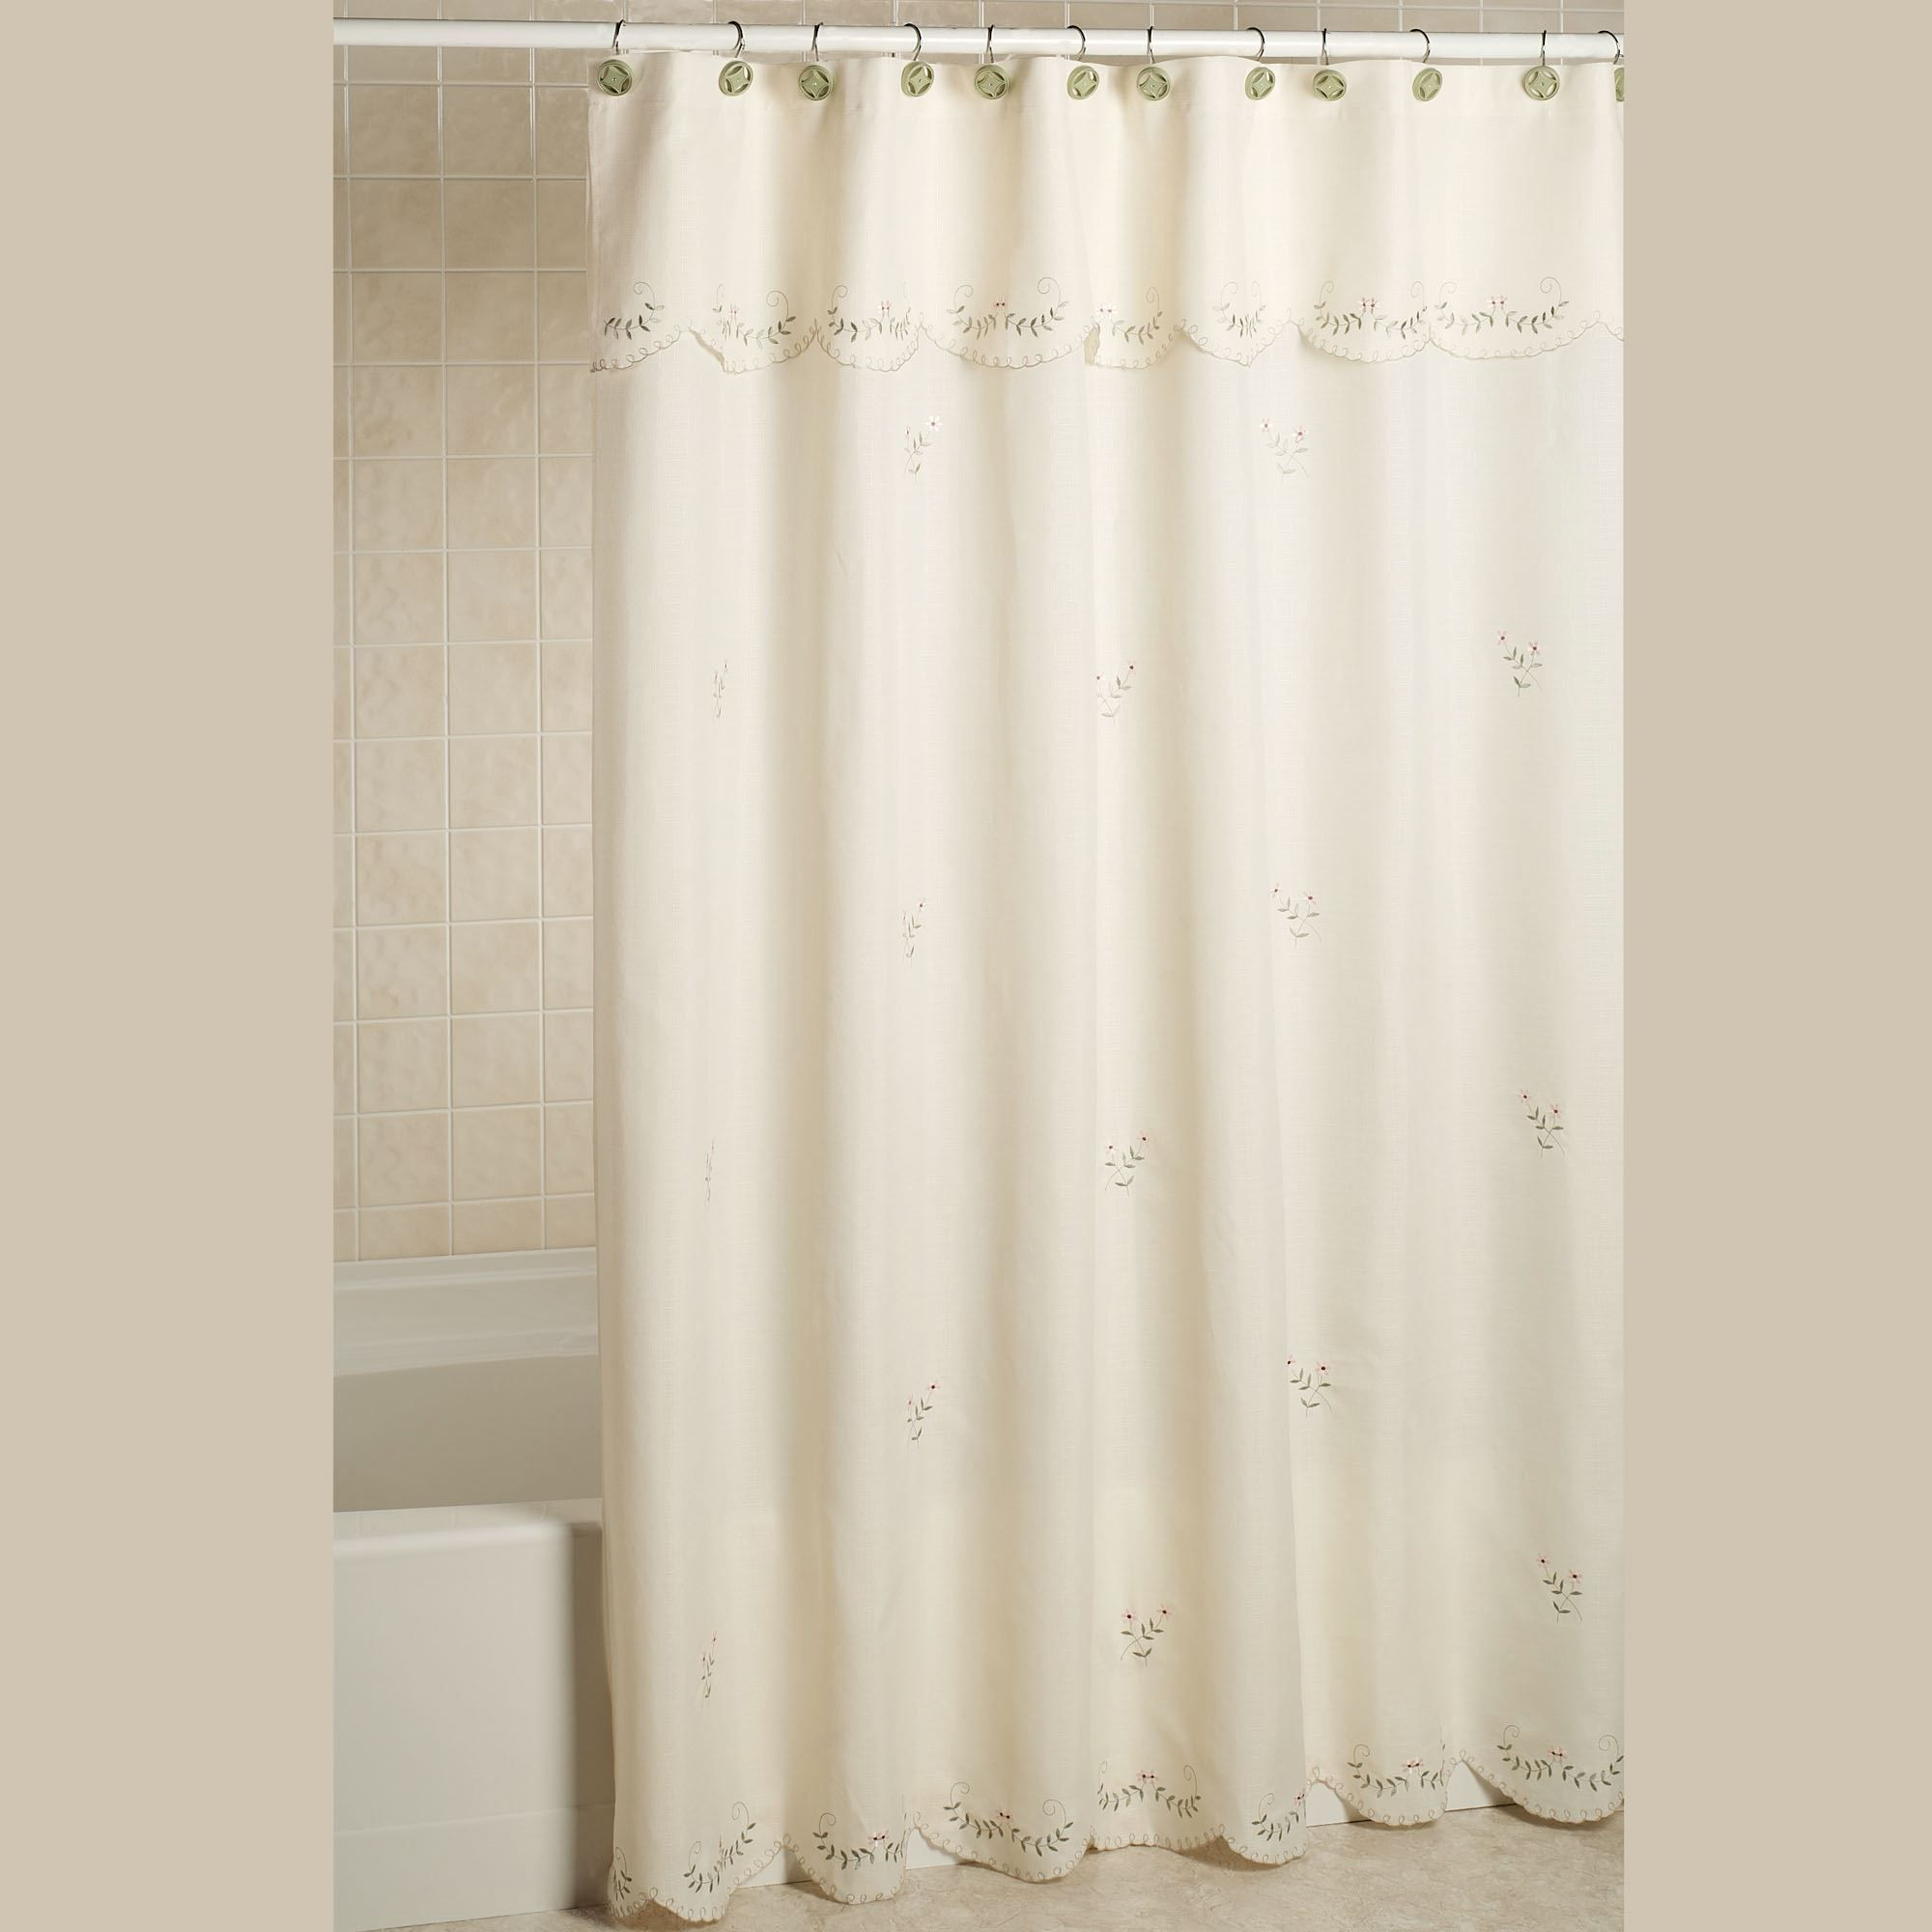 Choosing the best shower curtain check it out curtain ideas and